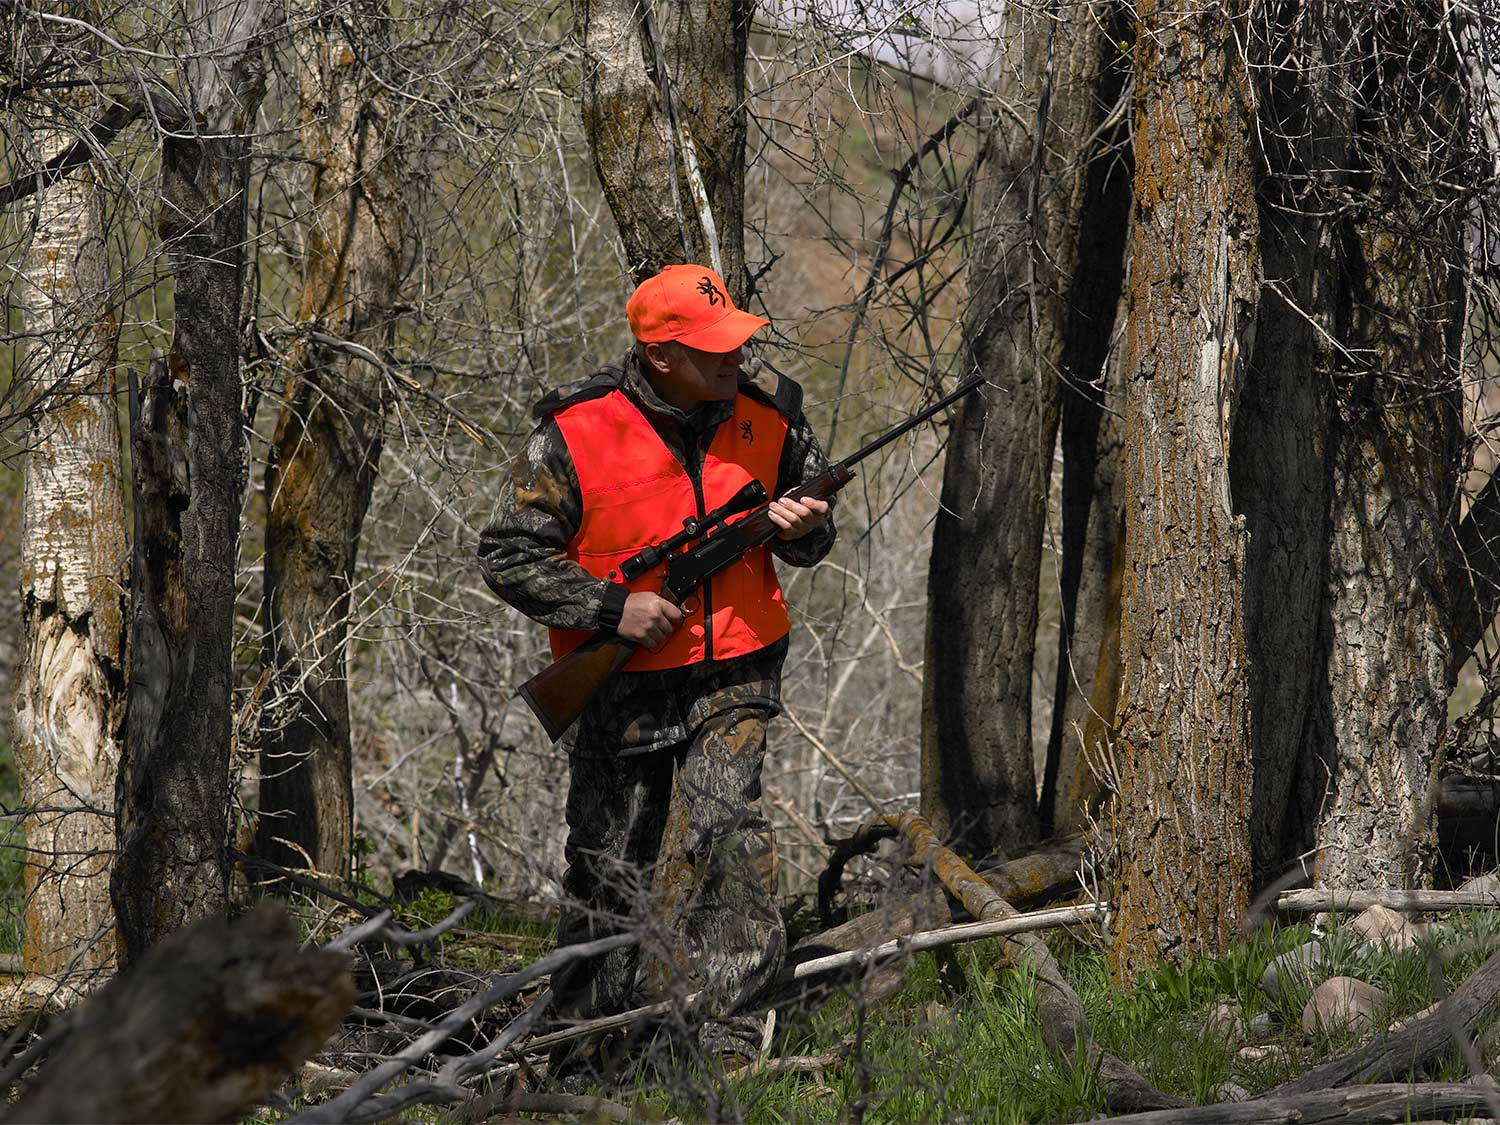 A hunter in camo and orange holding a rifle in the woods.